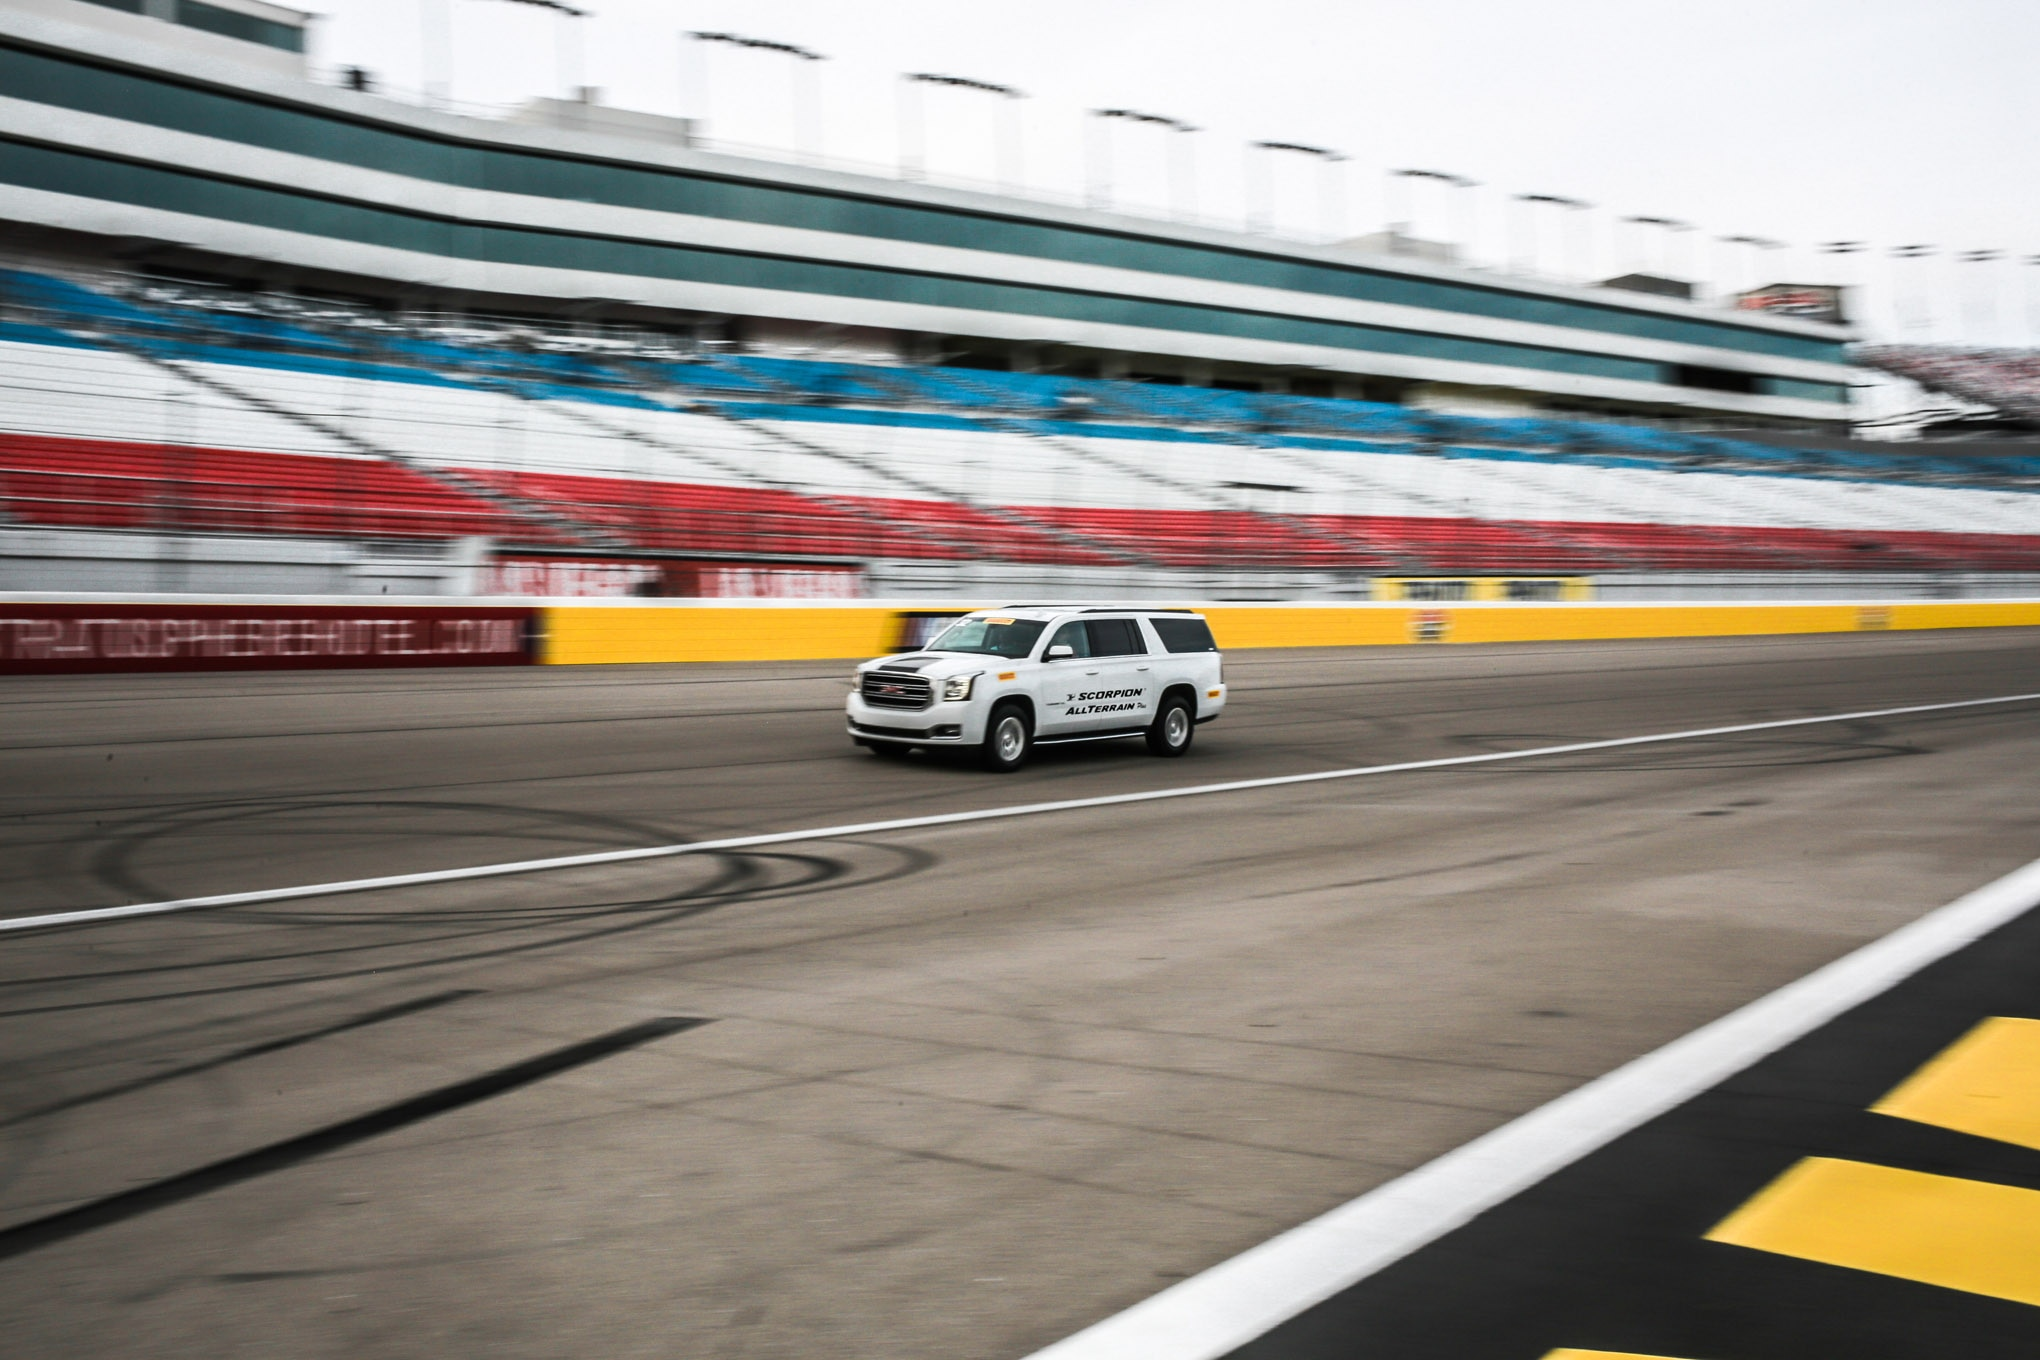 Even at triple-digit speeds on the race oval, the largest sources of noise were the engine whine and air whistling around the SUV.